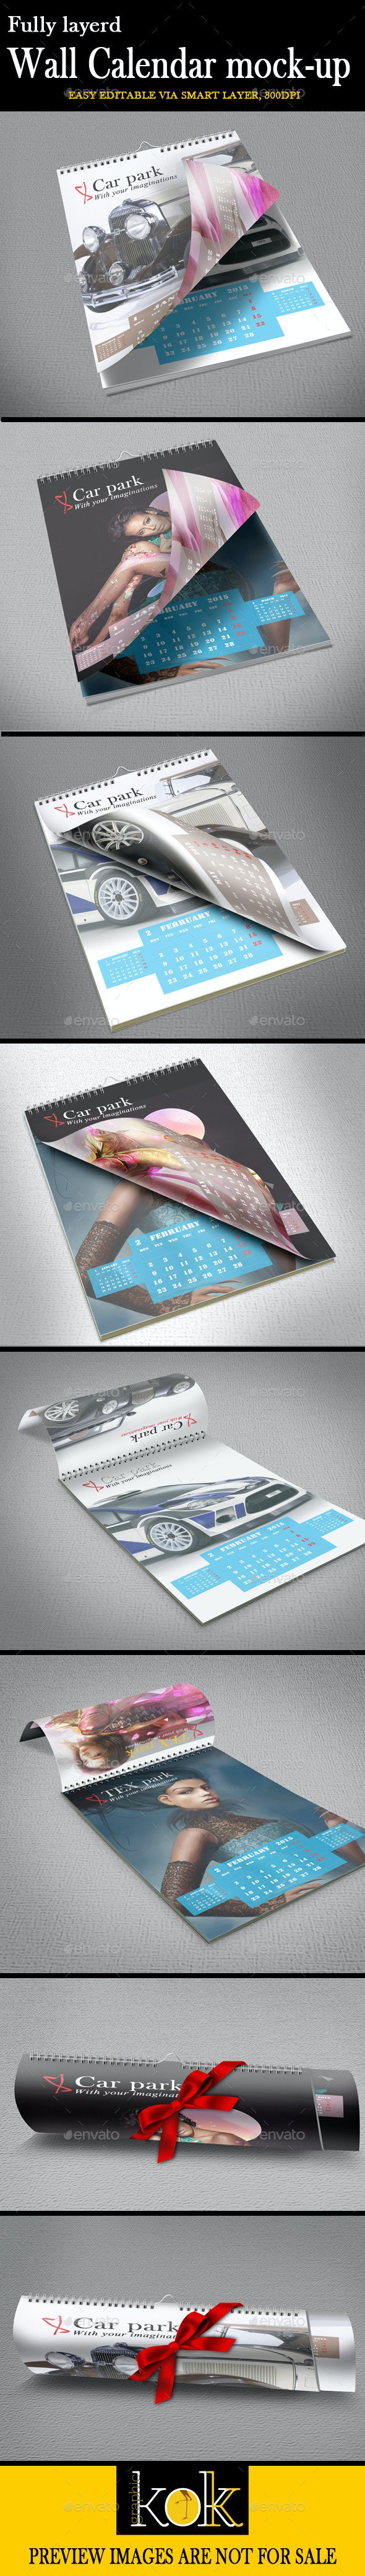 Wall Calendar Mockup - Product Mock-Ups Graphics